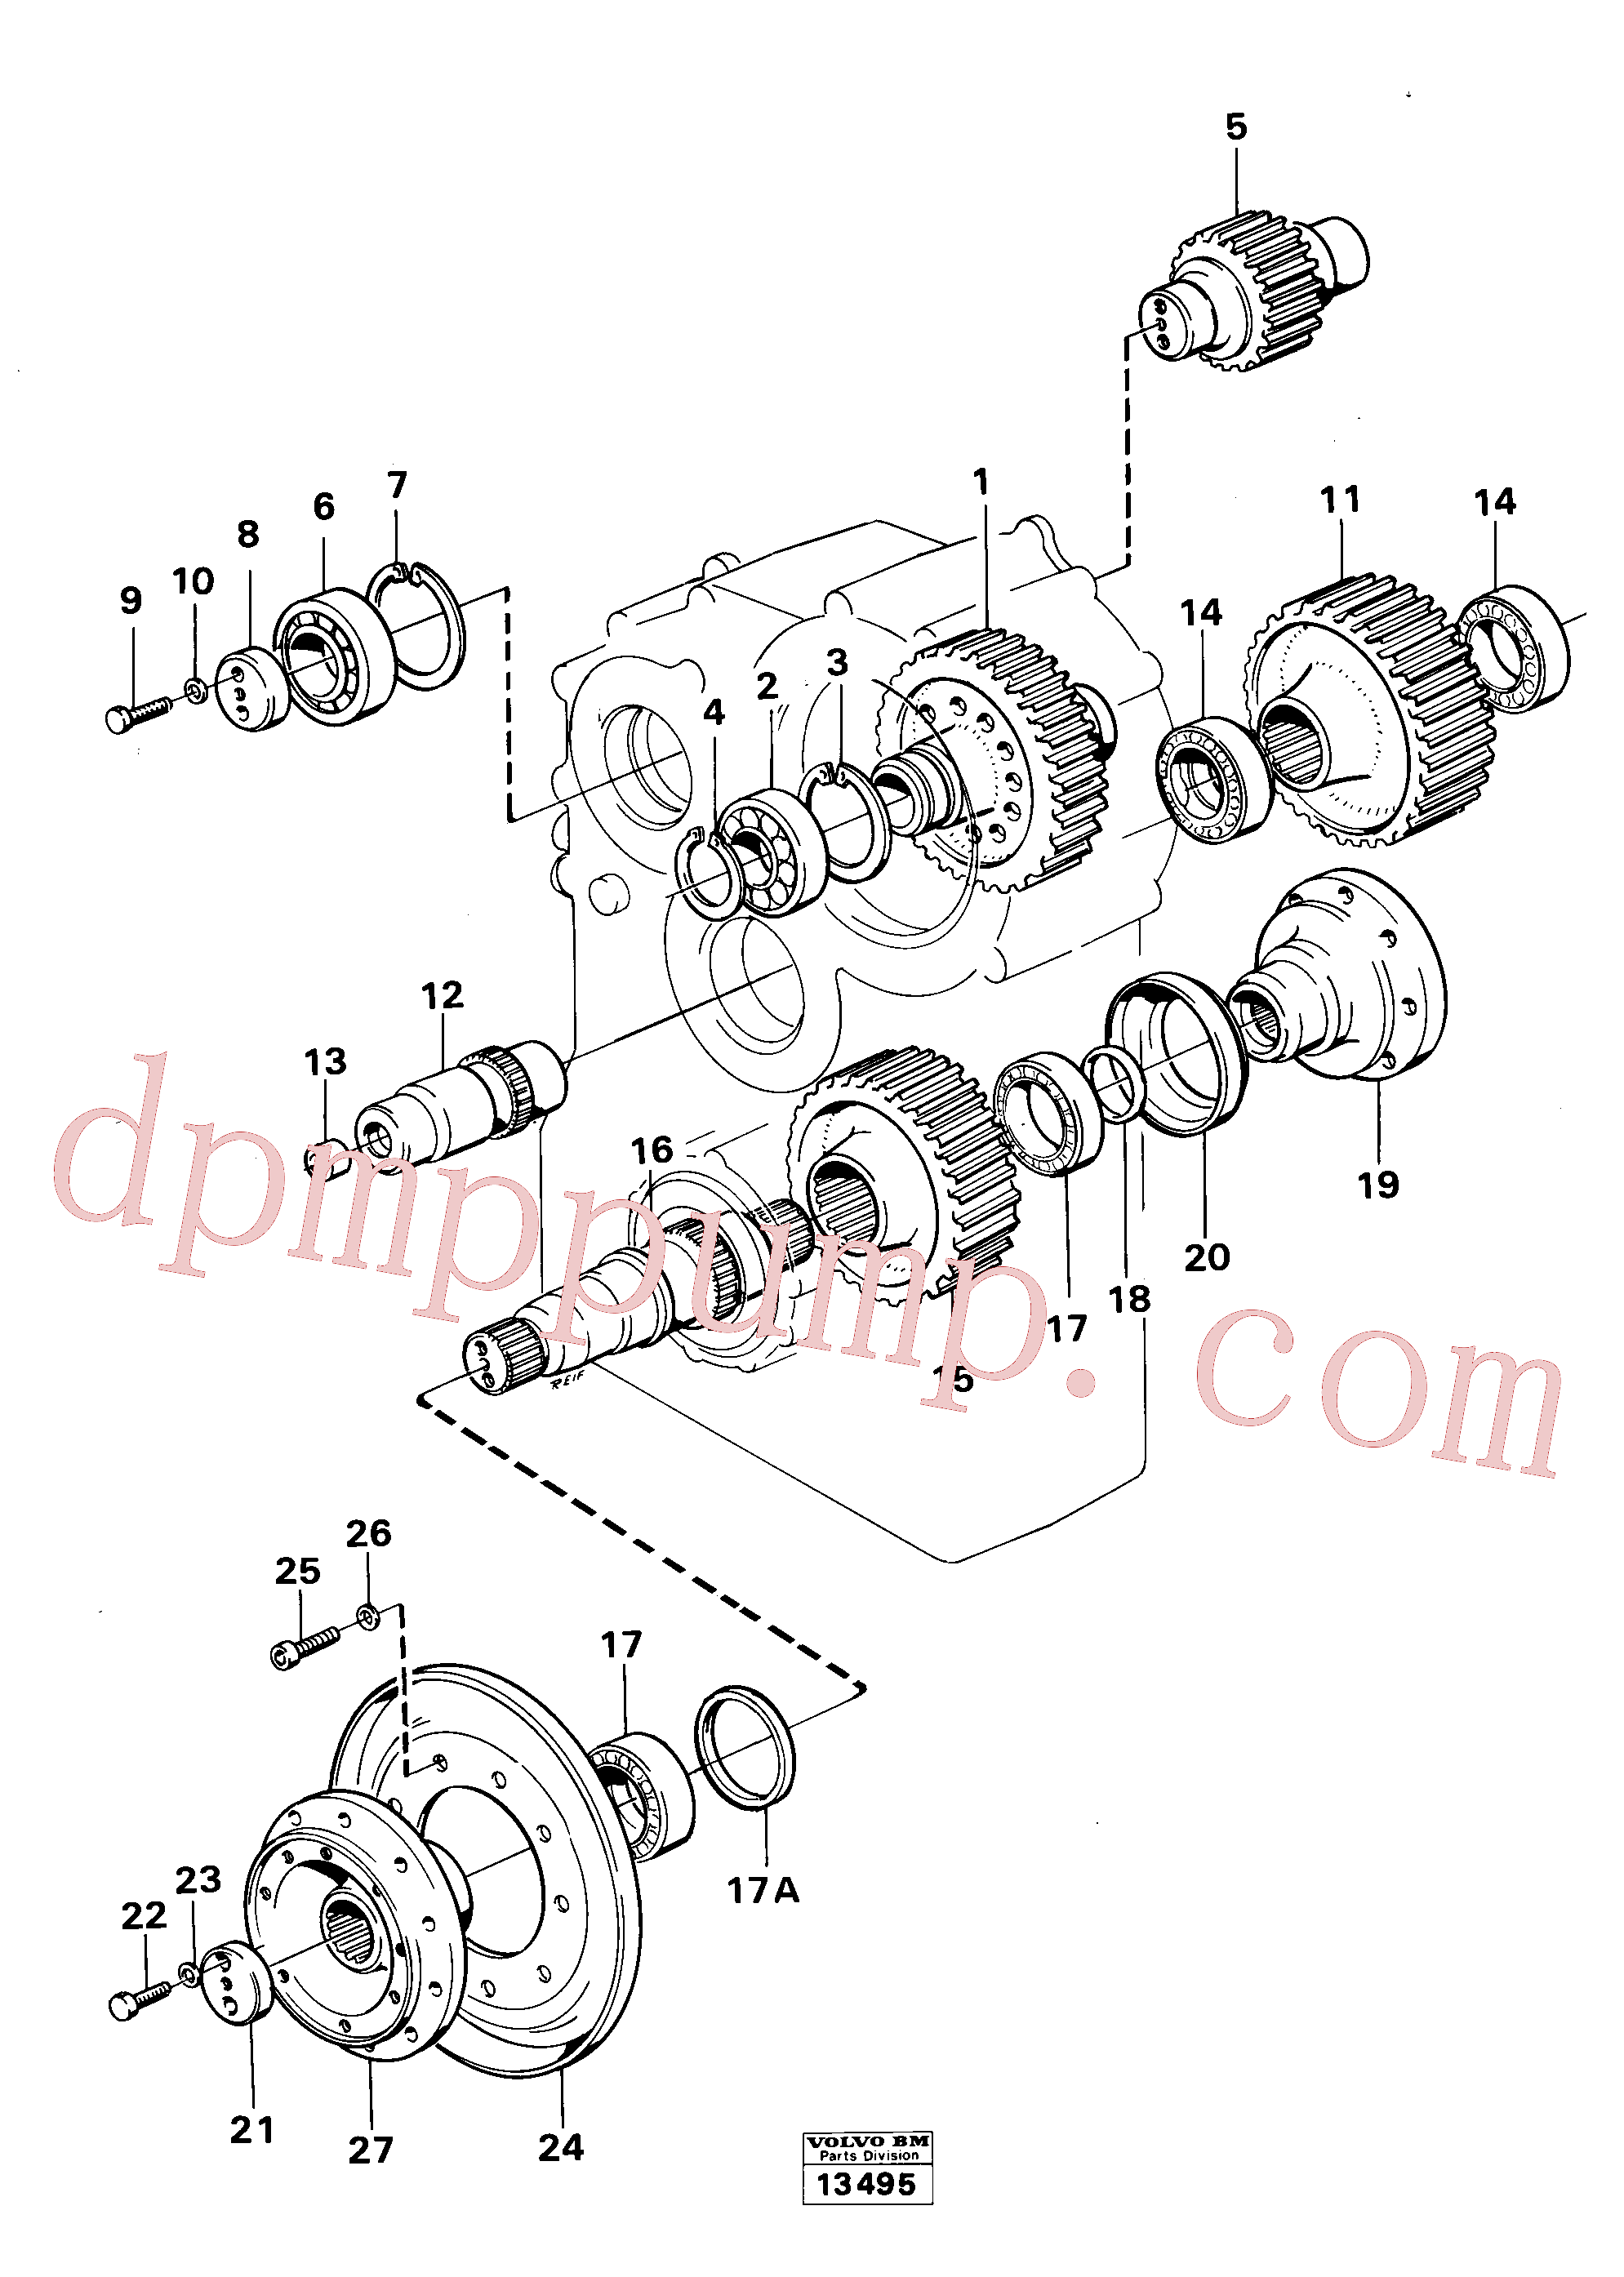 SA9541-02100 for Volvo Dropbox gears and shafts(13495 assembly)